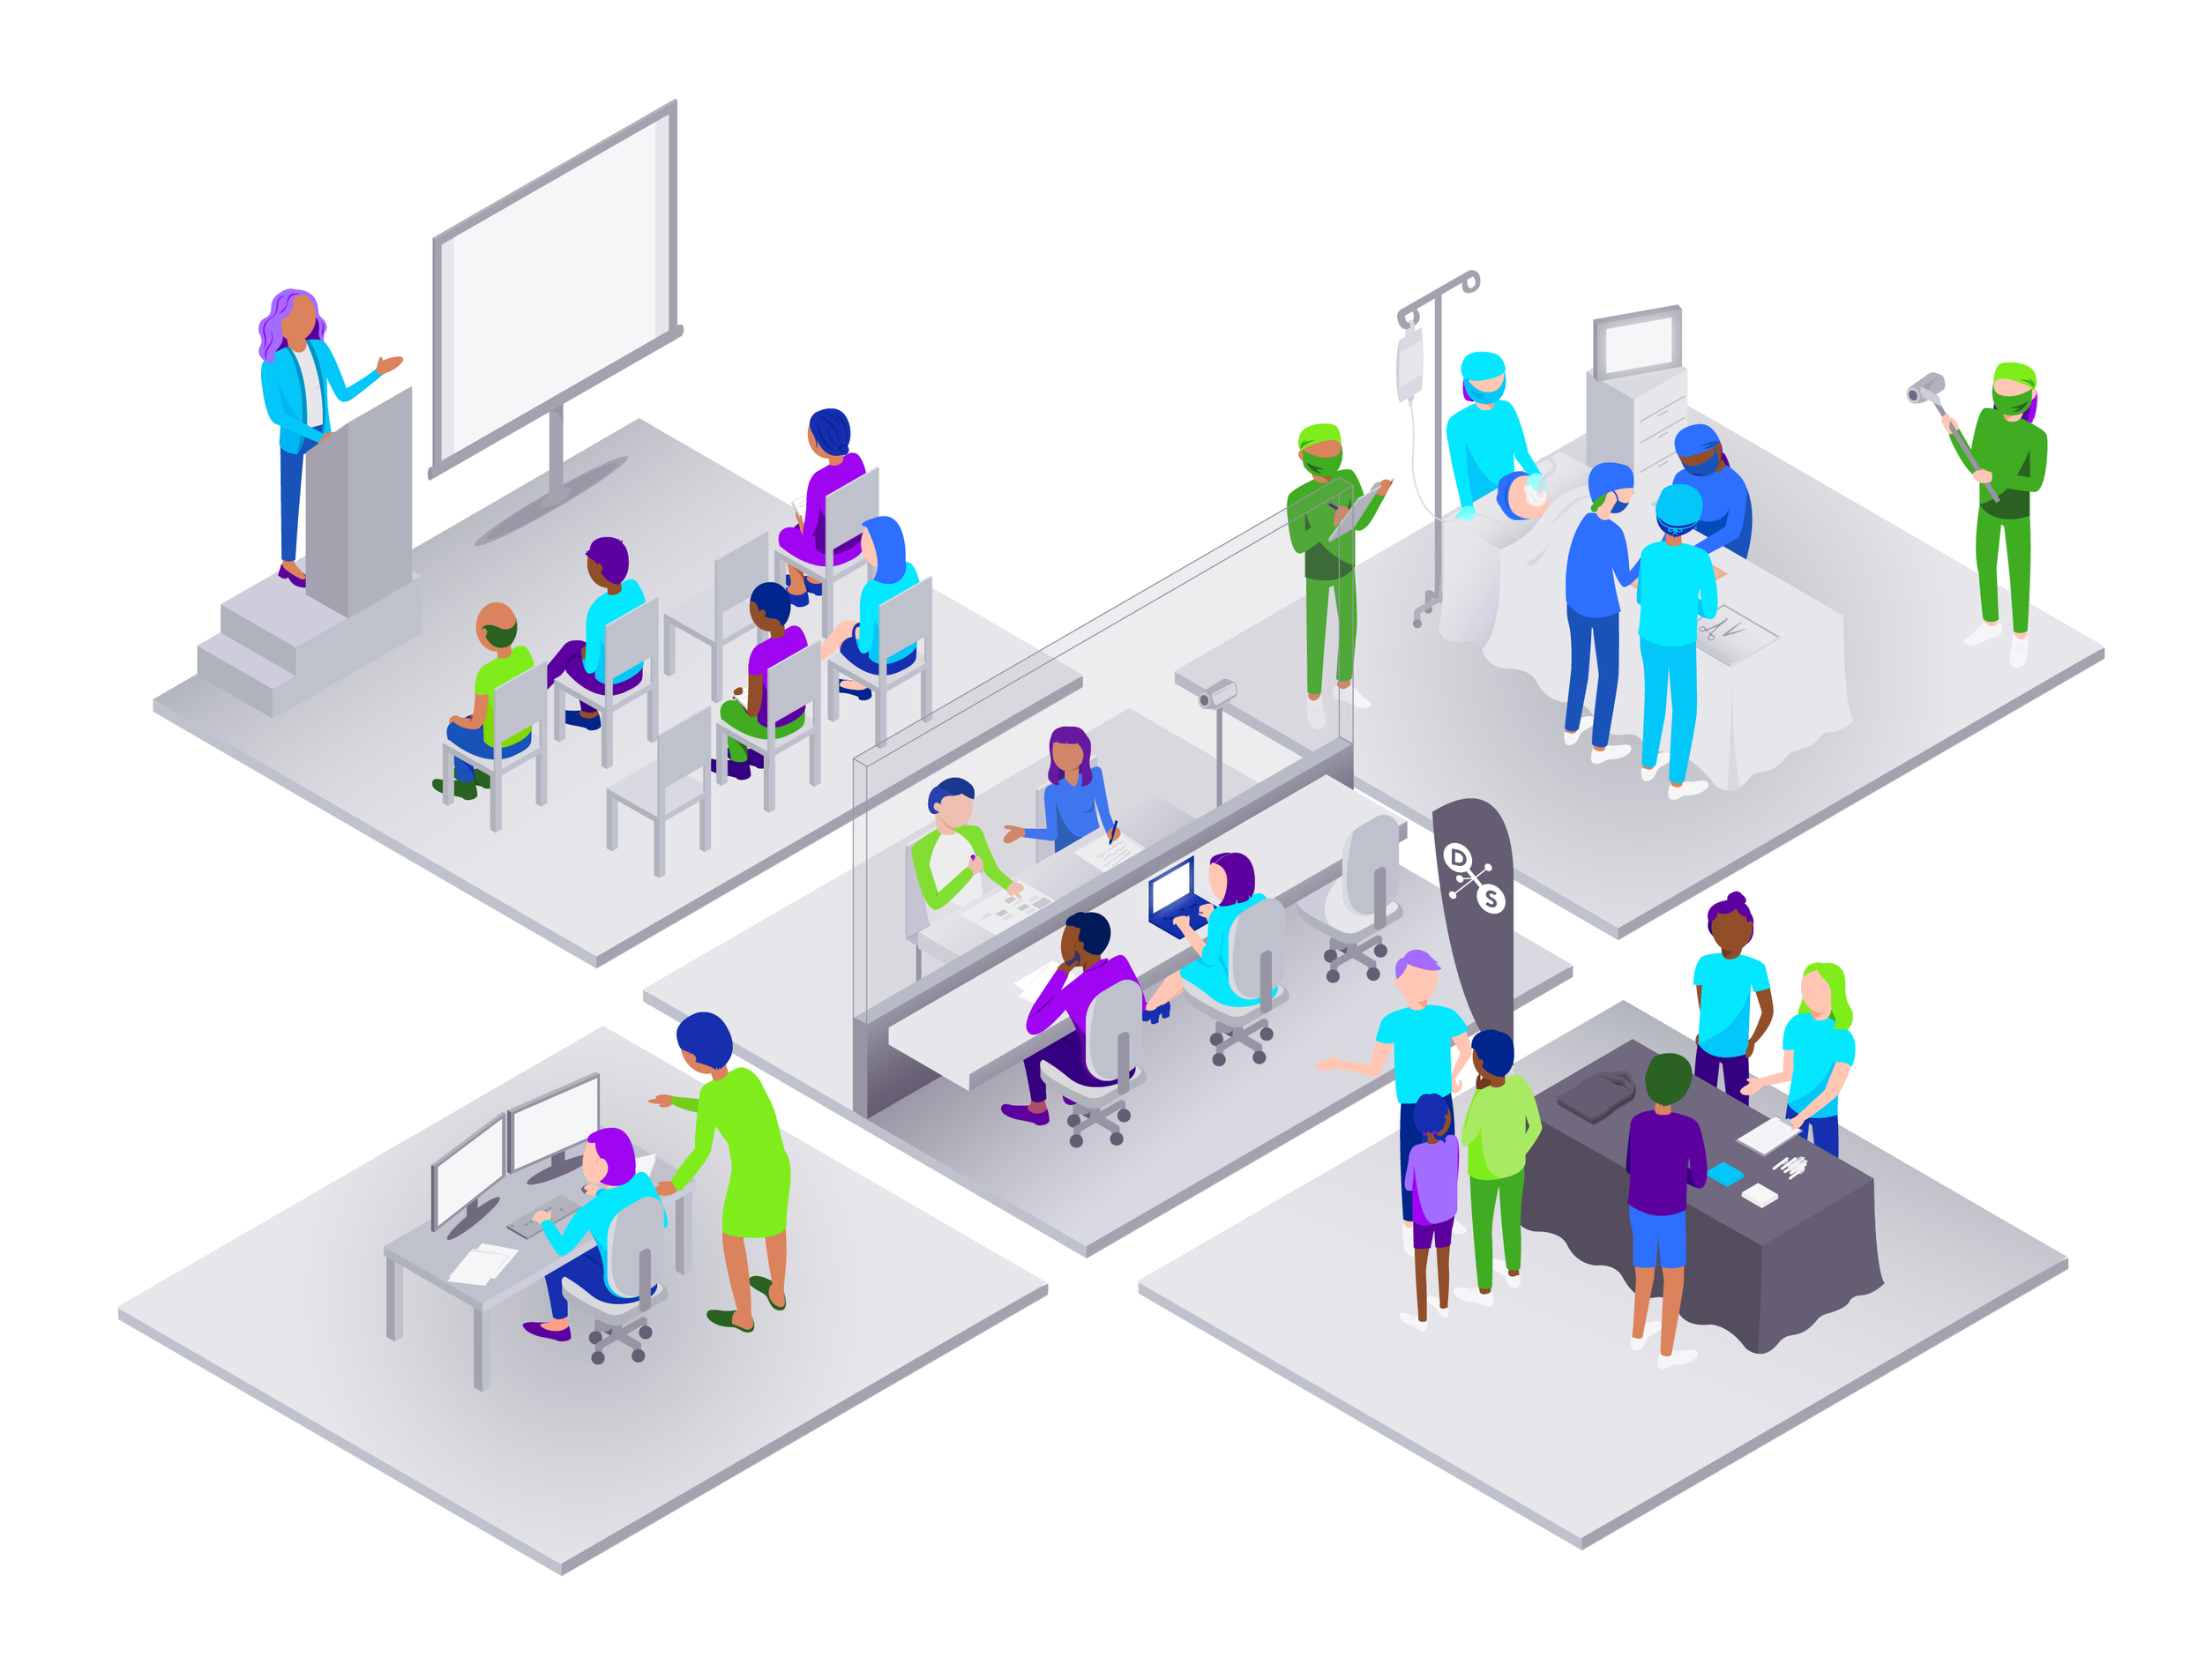 DS-INT_isometric-2019MAY10-2_services.png